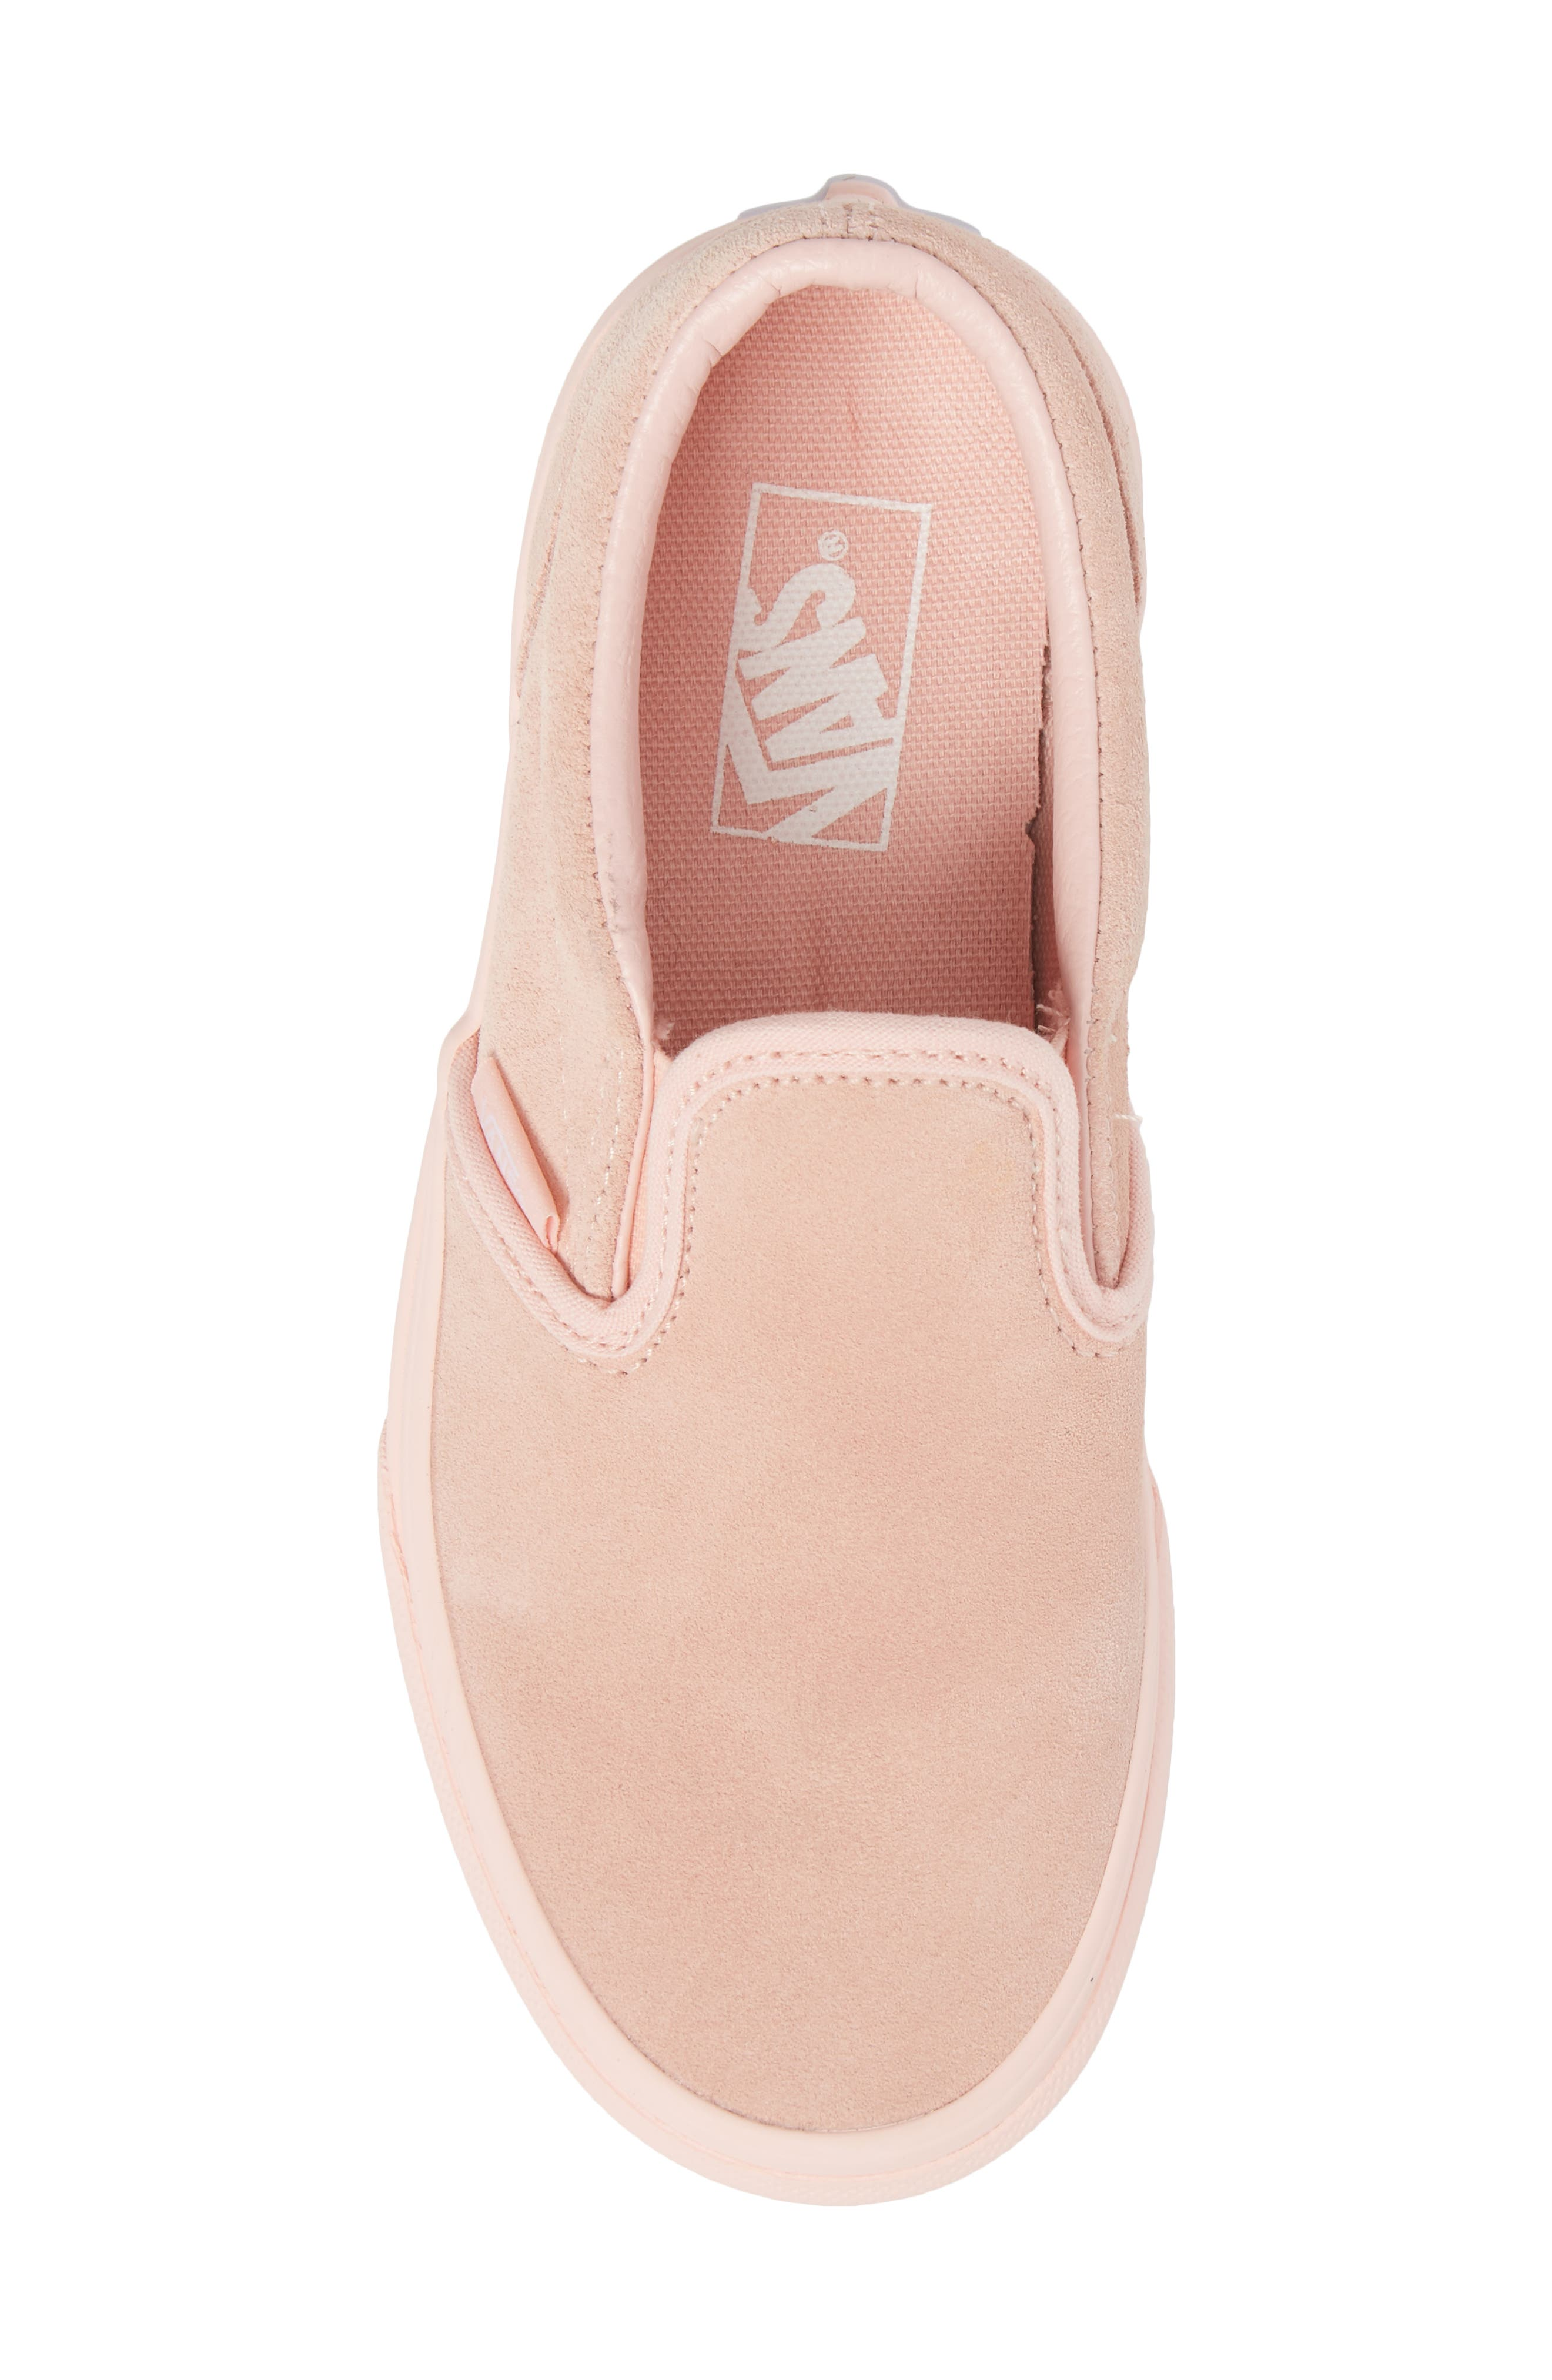 Classic Slip-On Sneaker,                             Alternate thumbnail 5, color,                             Suede Mono/ English Rose